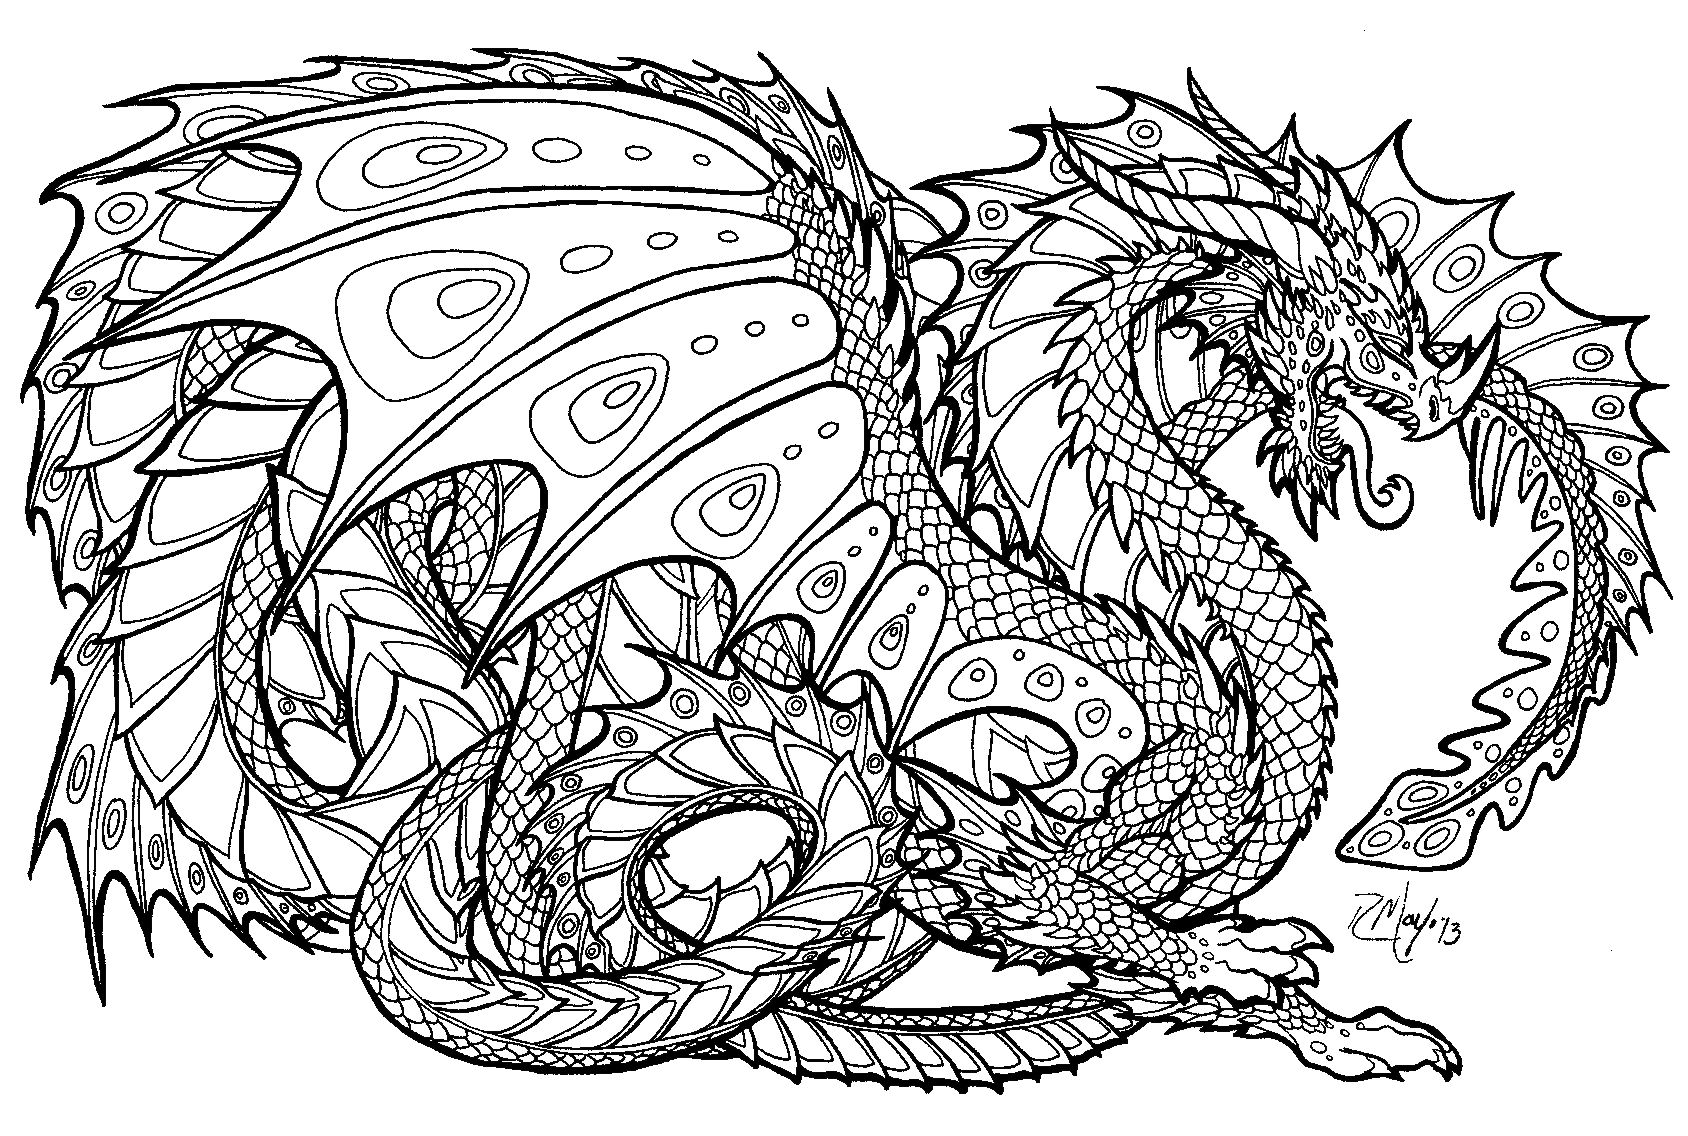 adult coloring pages dragon free printable coloring pages for adults advanced dragons   Google  adult coloring pages dragon